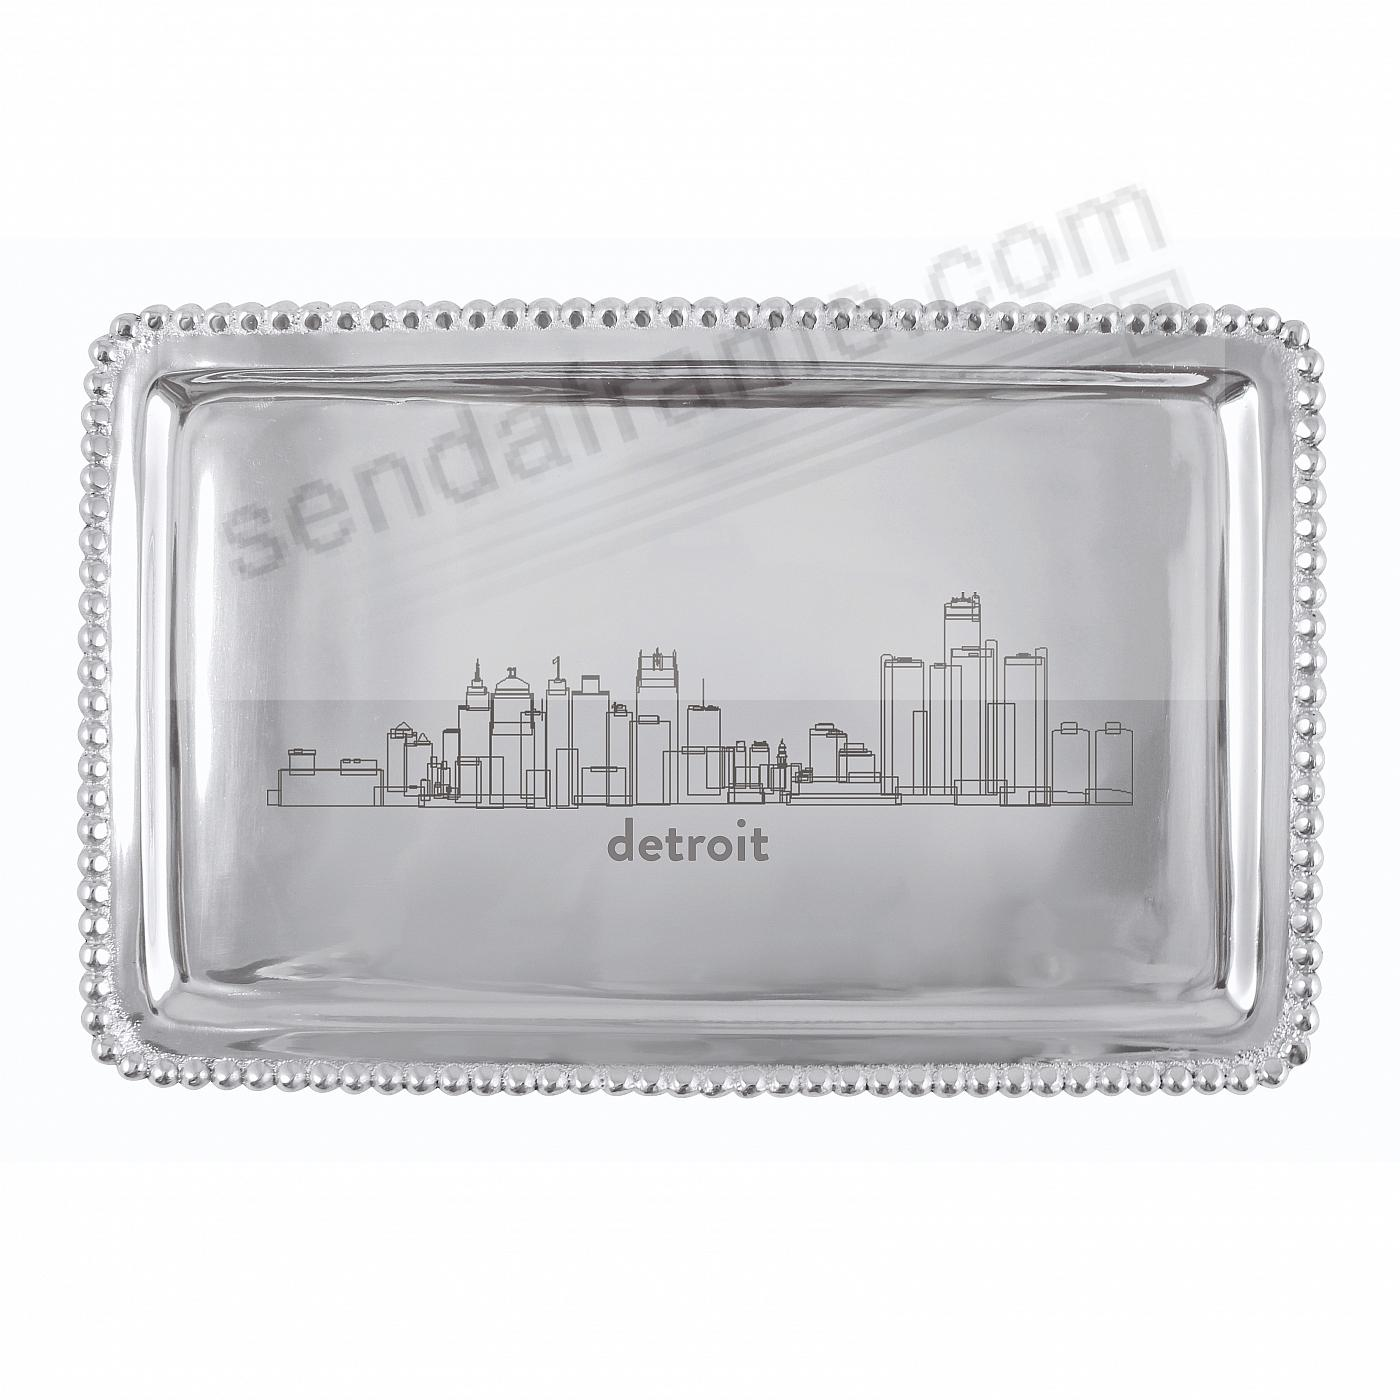 The DETROIT-MICHIGAN CITYSCAPE BEADED BUFFET TRAY crafted by Mariposa®